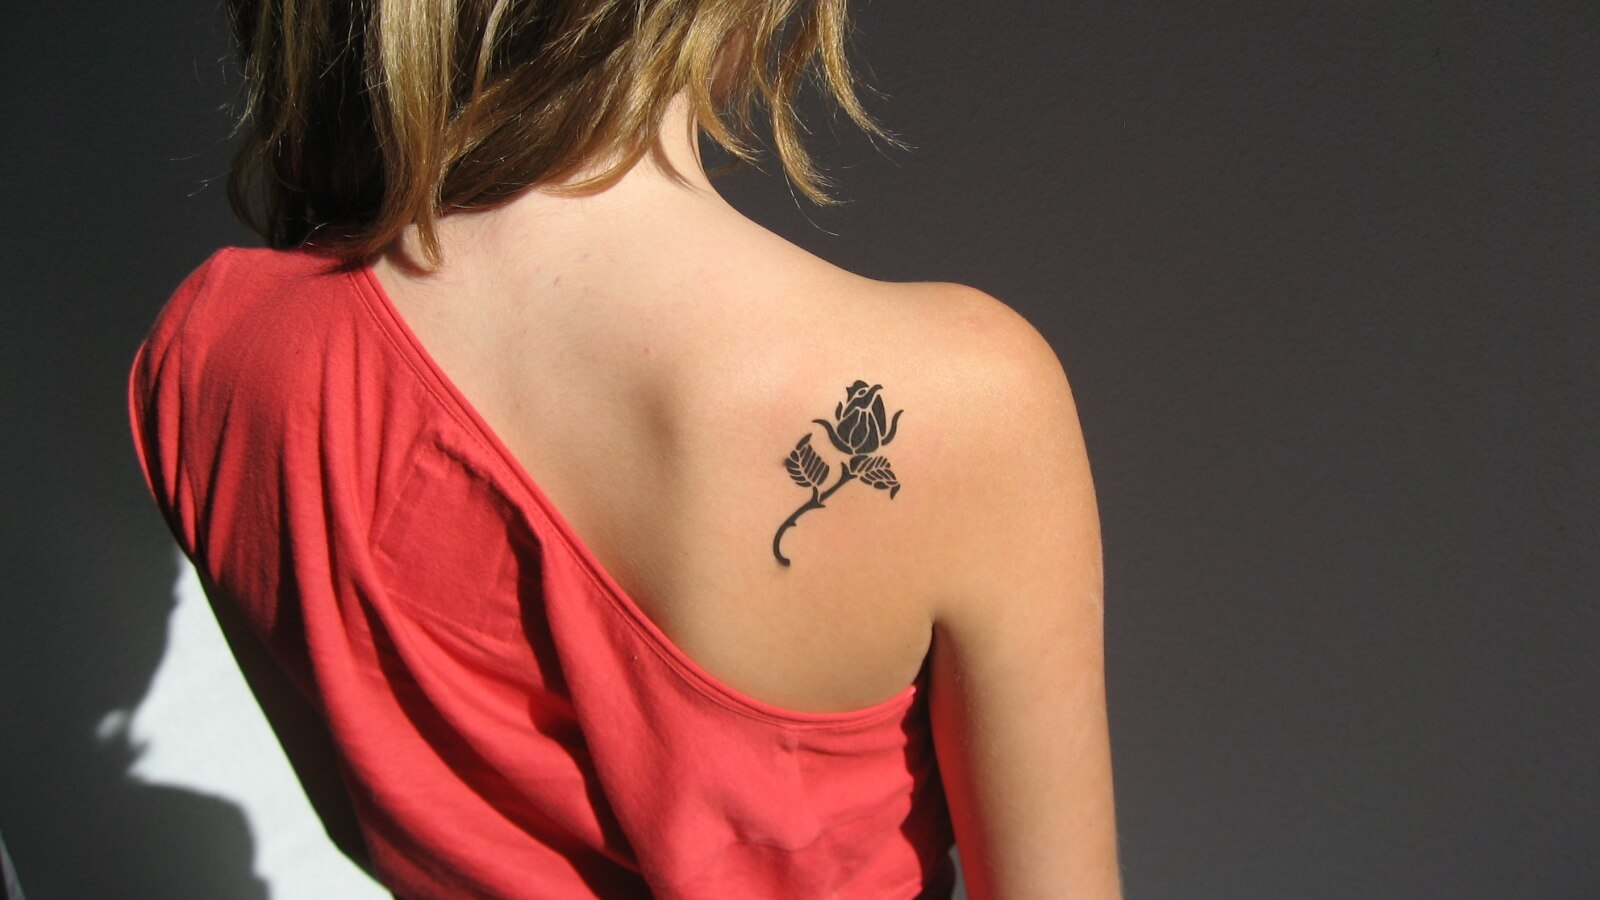 Exotic Black Rose Tattoo Designs on the Back